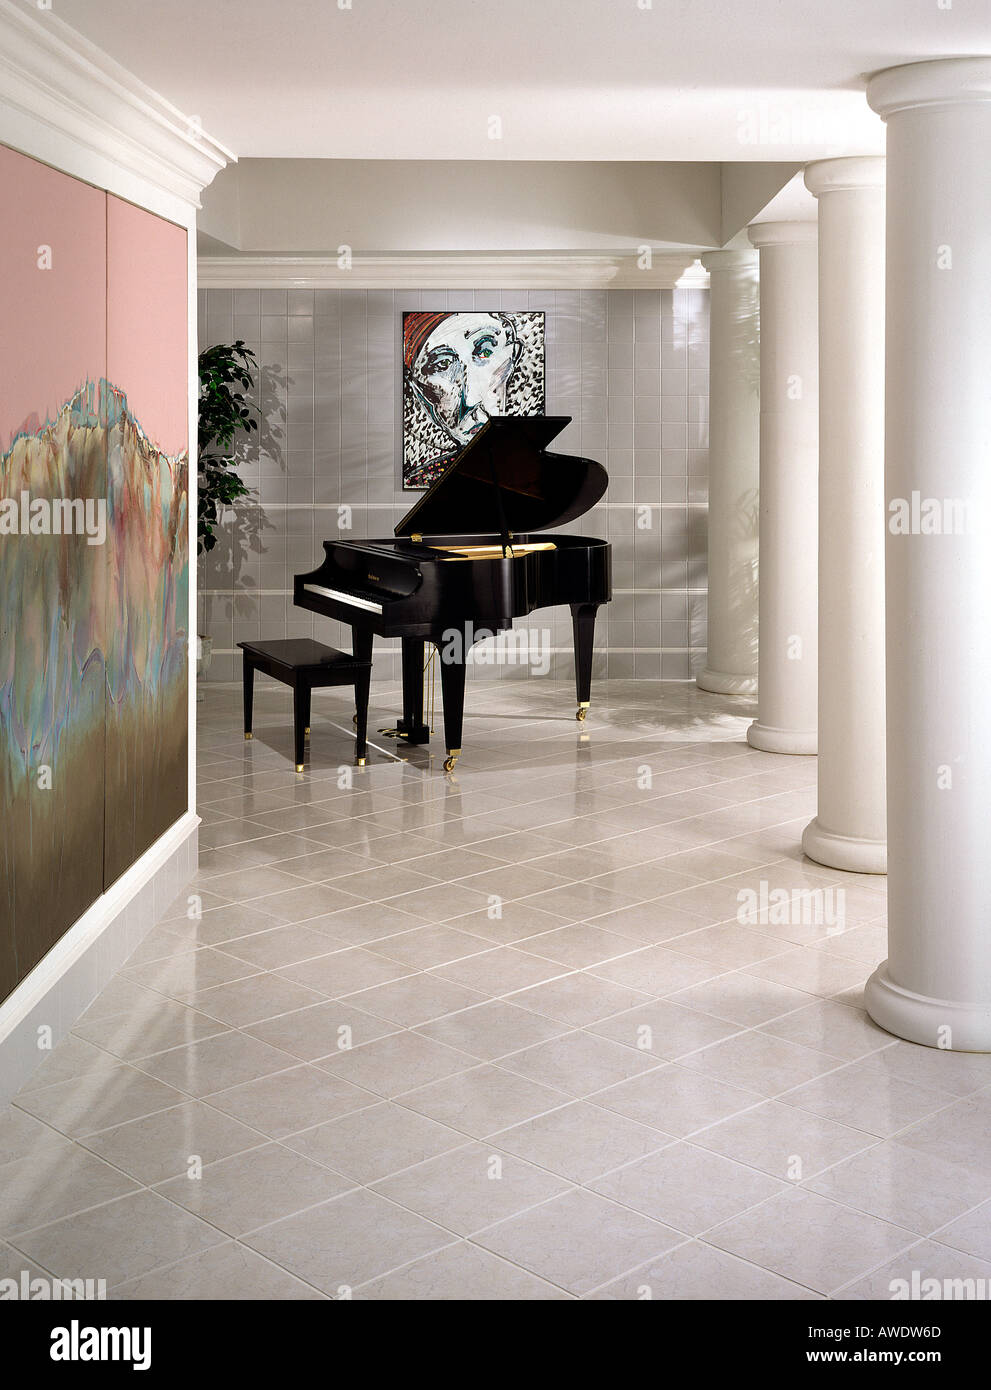 Interior room tile flooring hallway entrance grand piano doric stock interior room tile flooring hallway entrance grand piano doric columns metro style styling ceramic tile floor dailygadgetfo Images